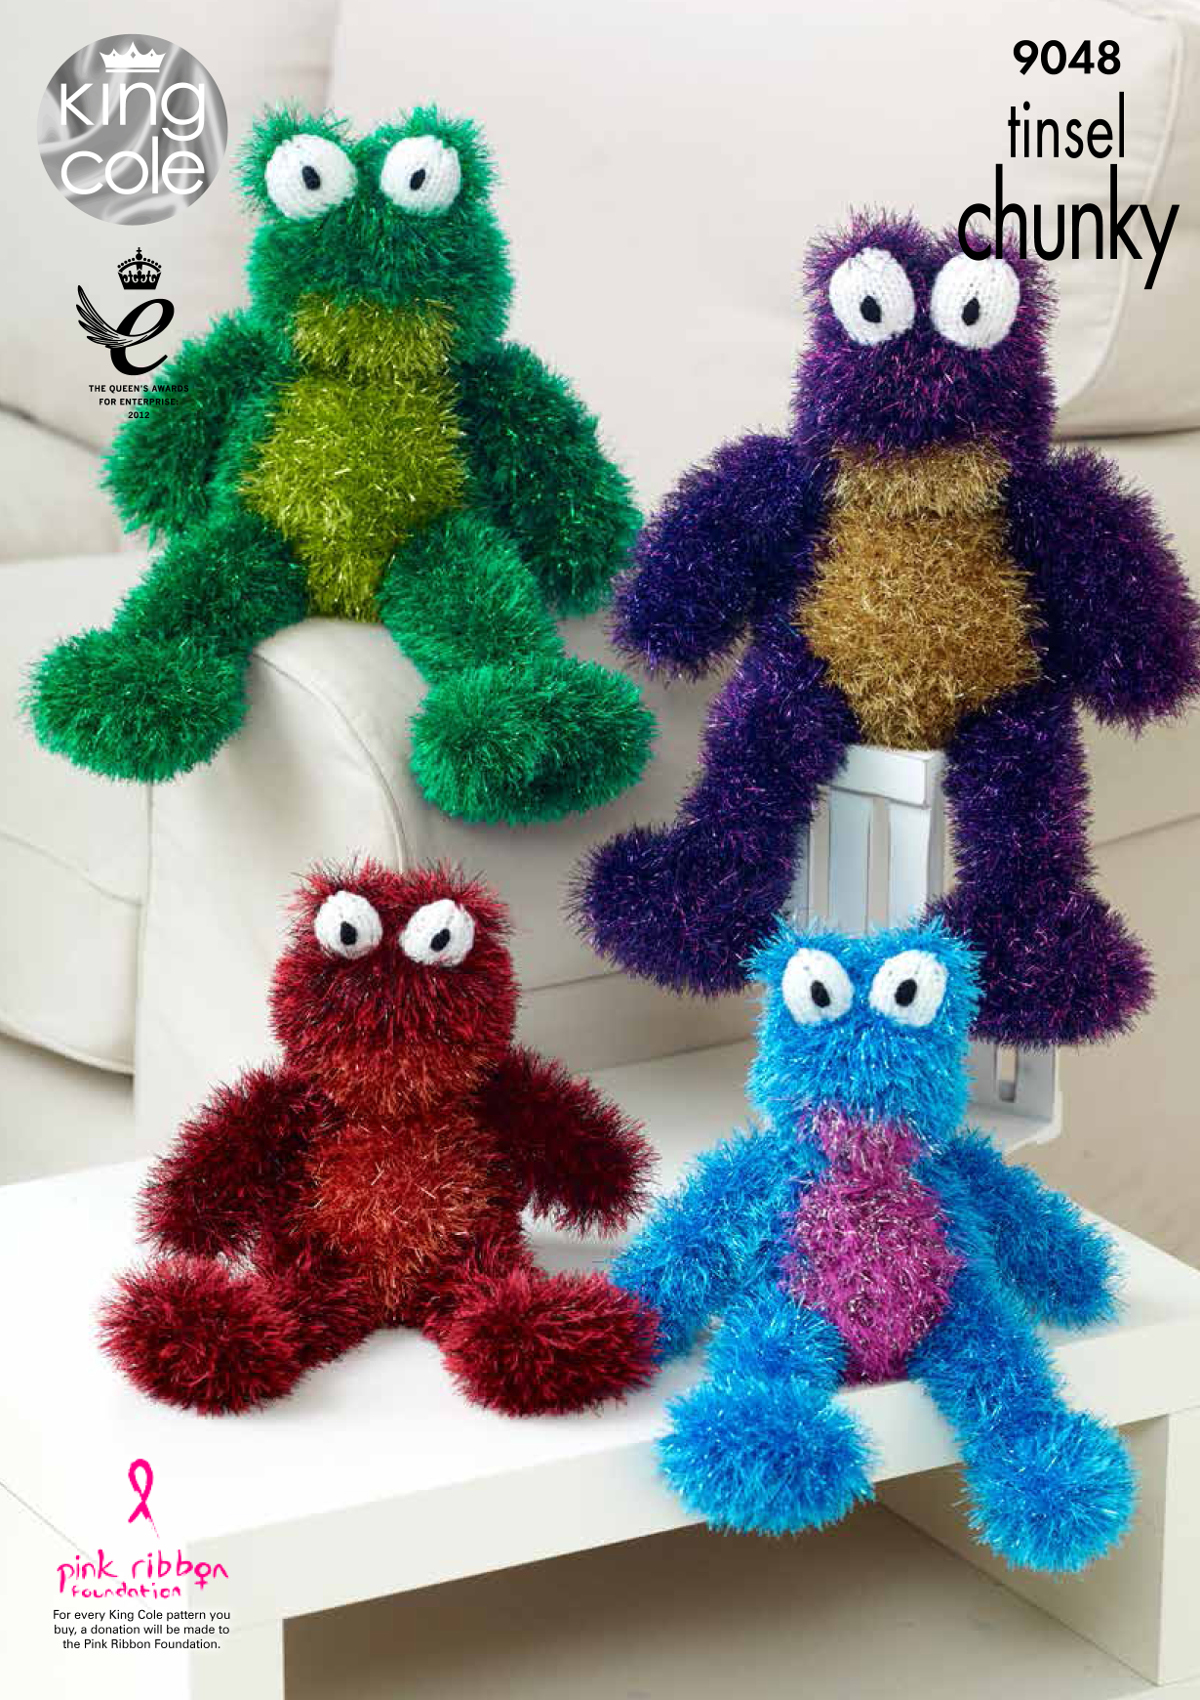 Tinsel chunky knitting pattern small or large frog animal toy king tinsel chunky knitting pattern small or large frog animal toy king cole 9048 bankloansurffo Gallery